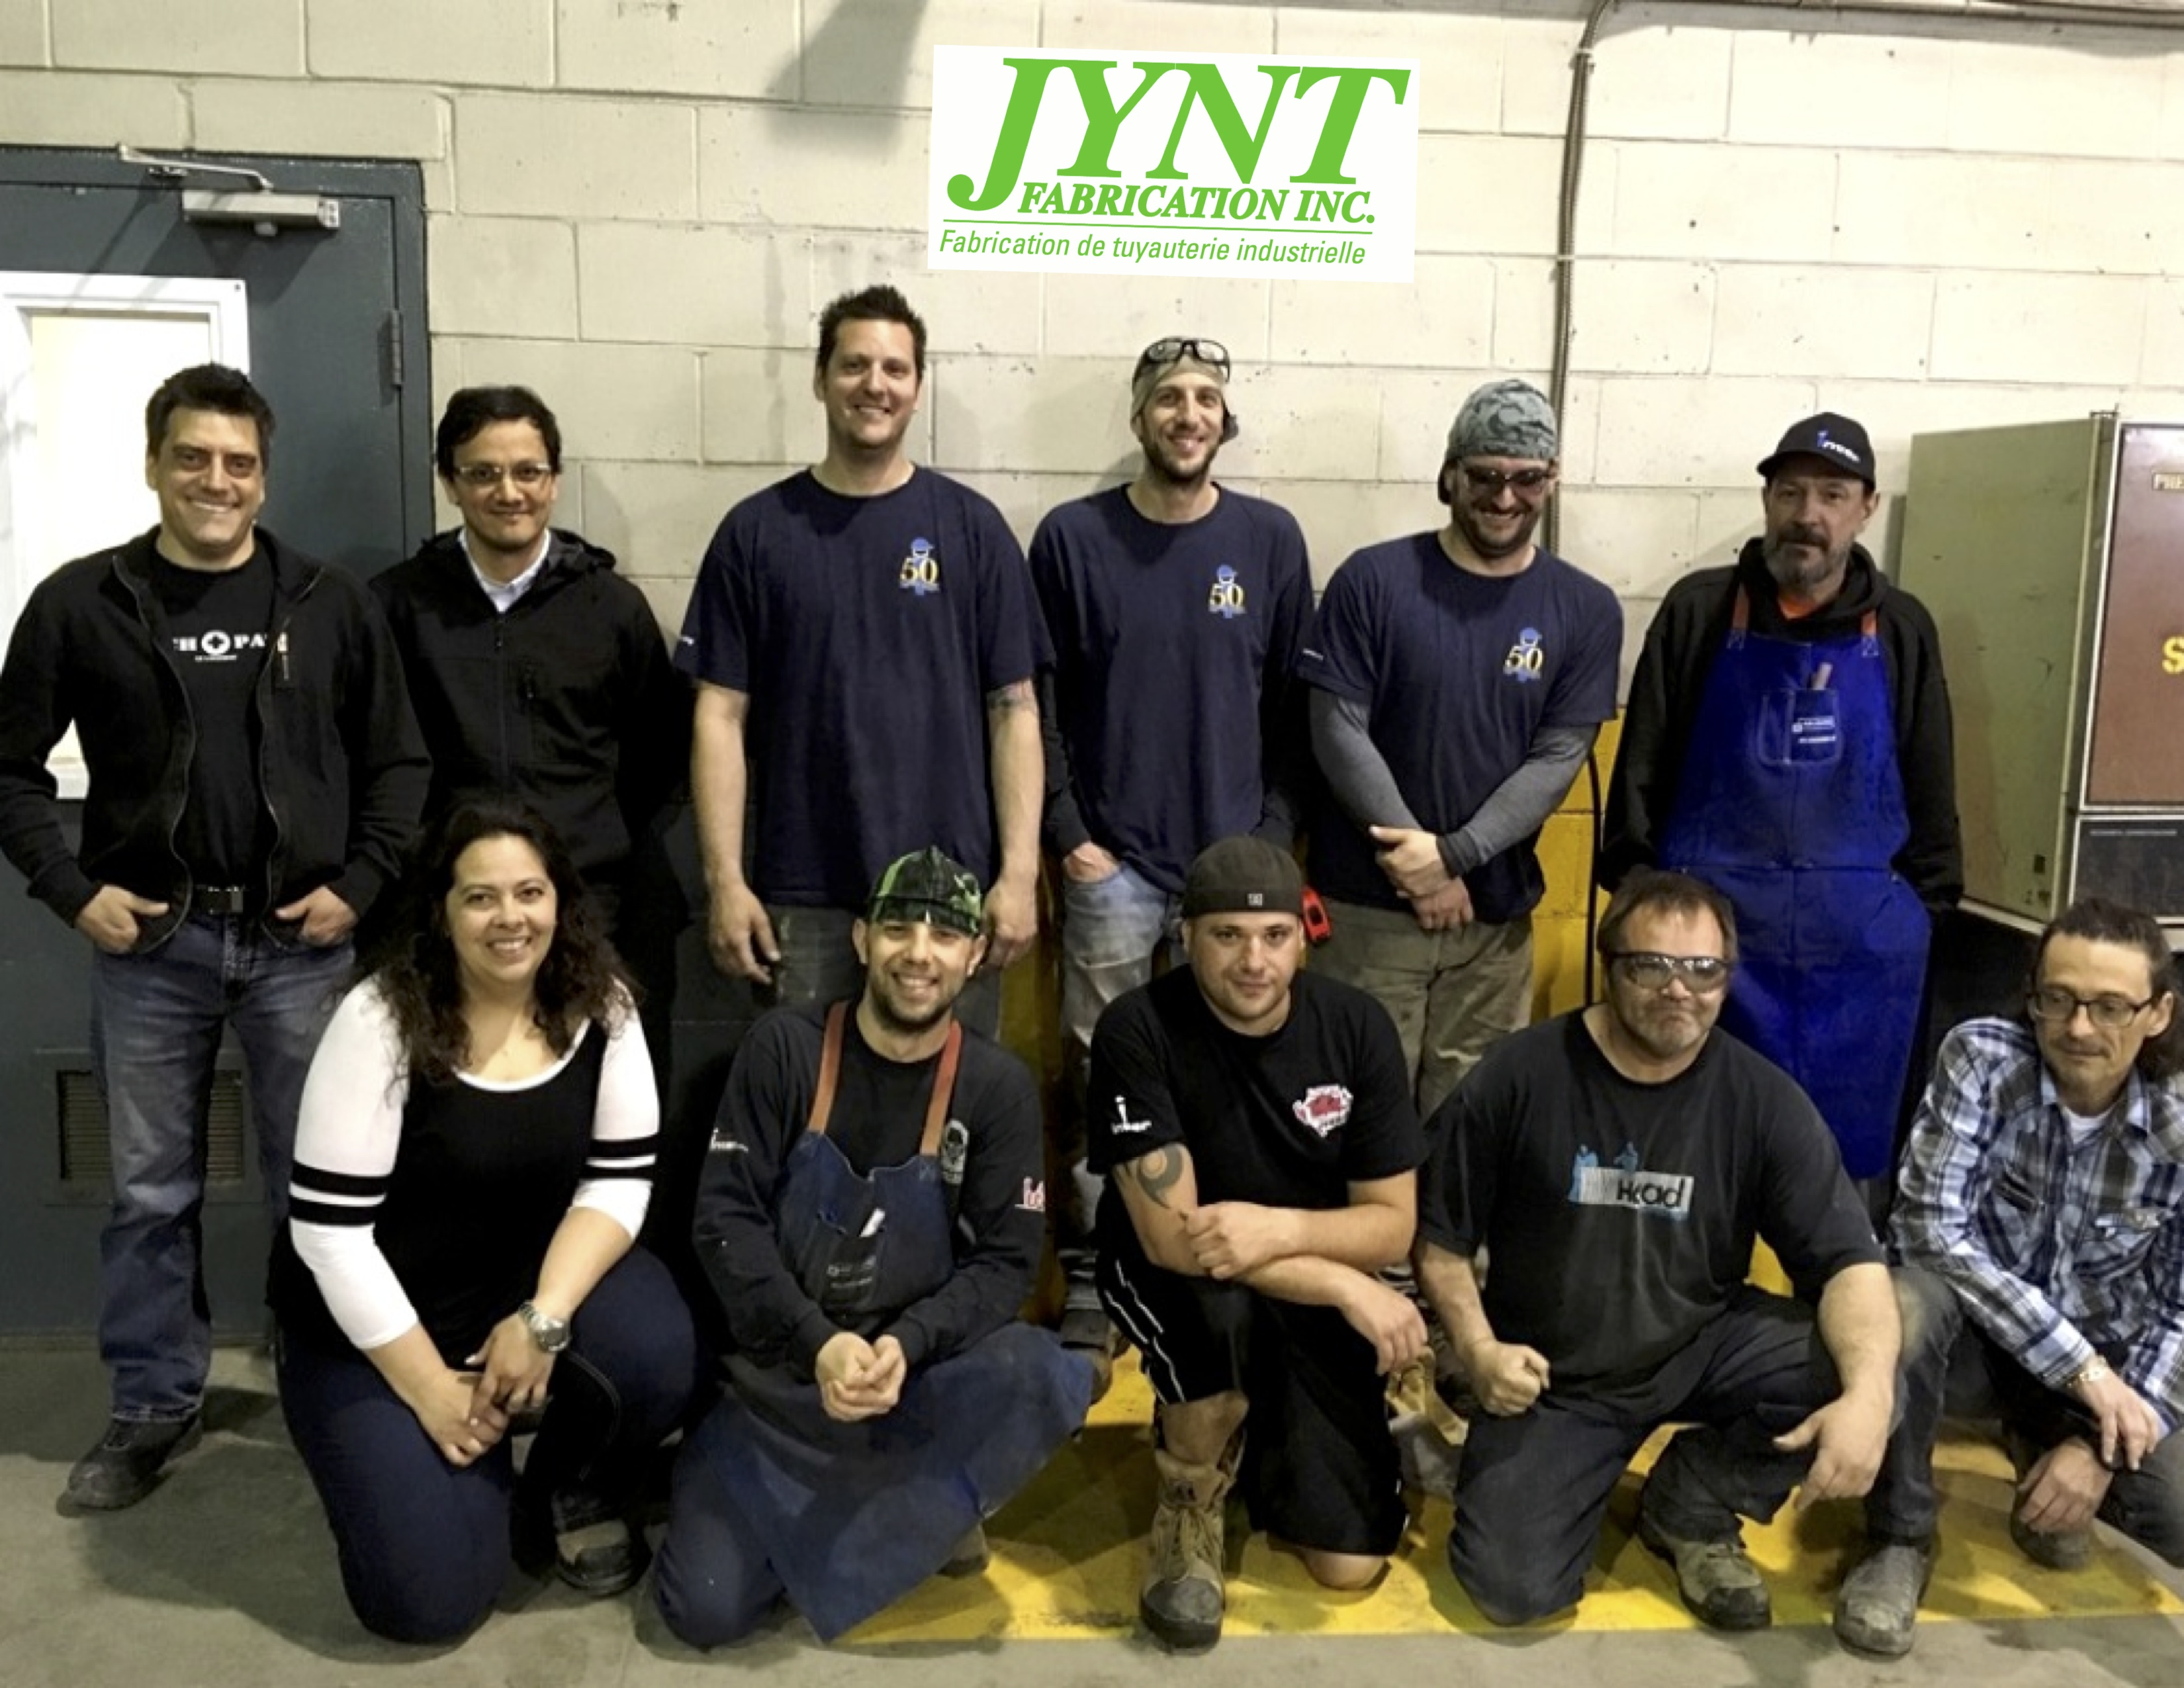 Employees involved in the community